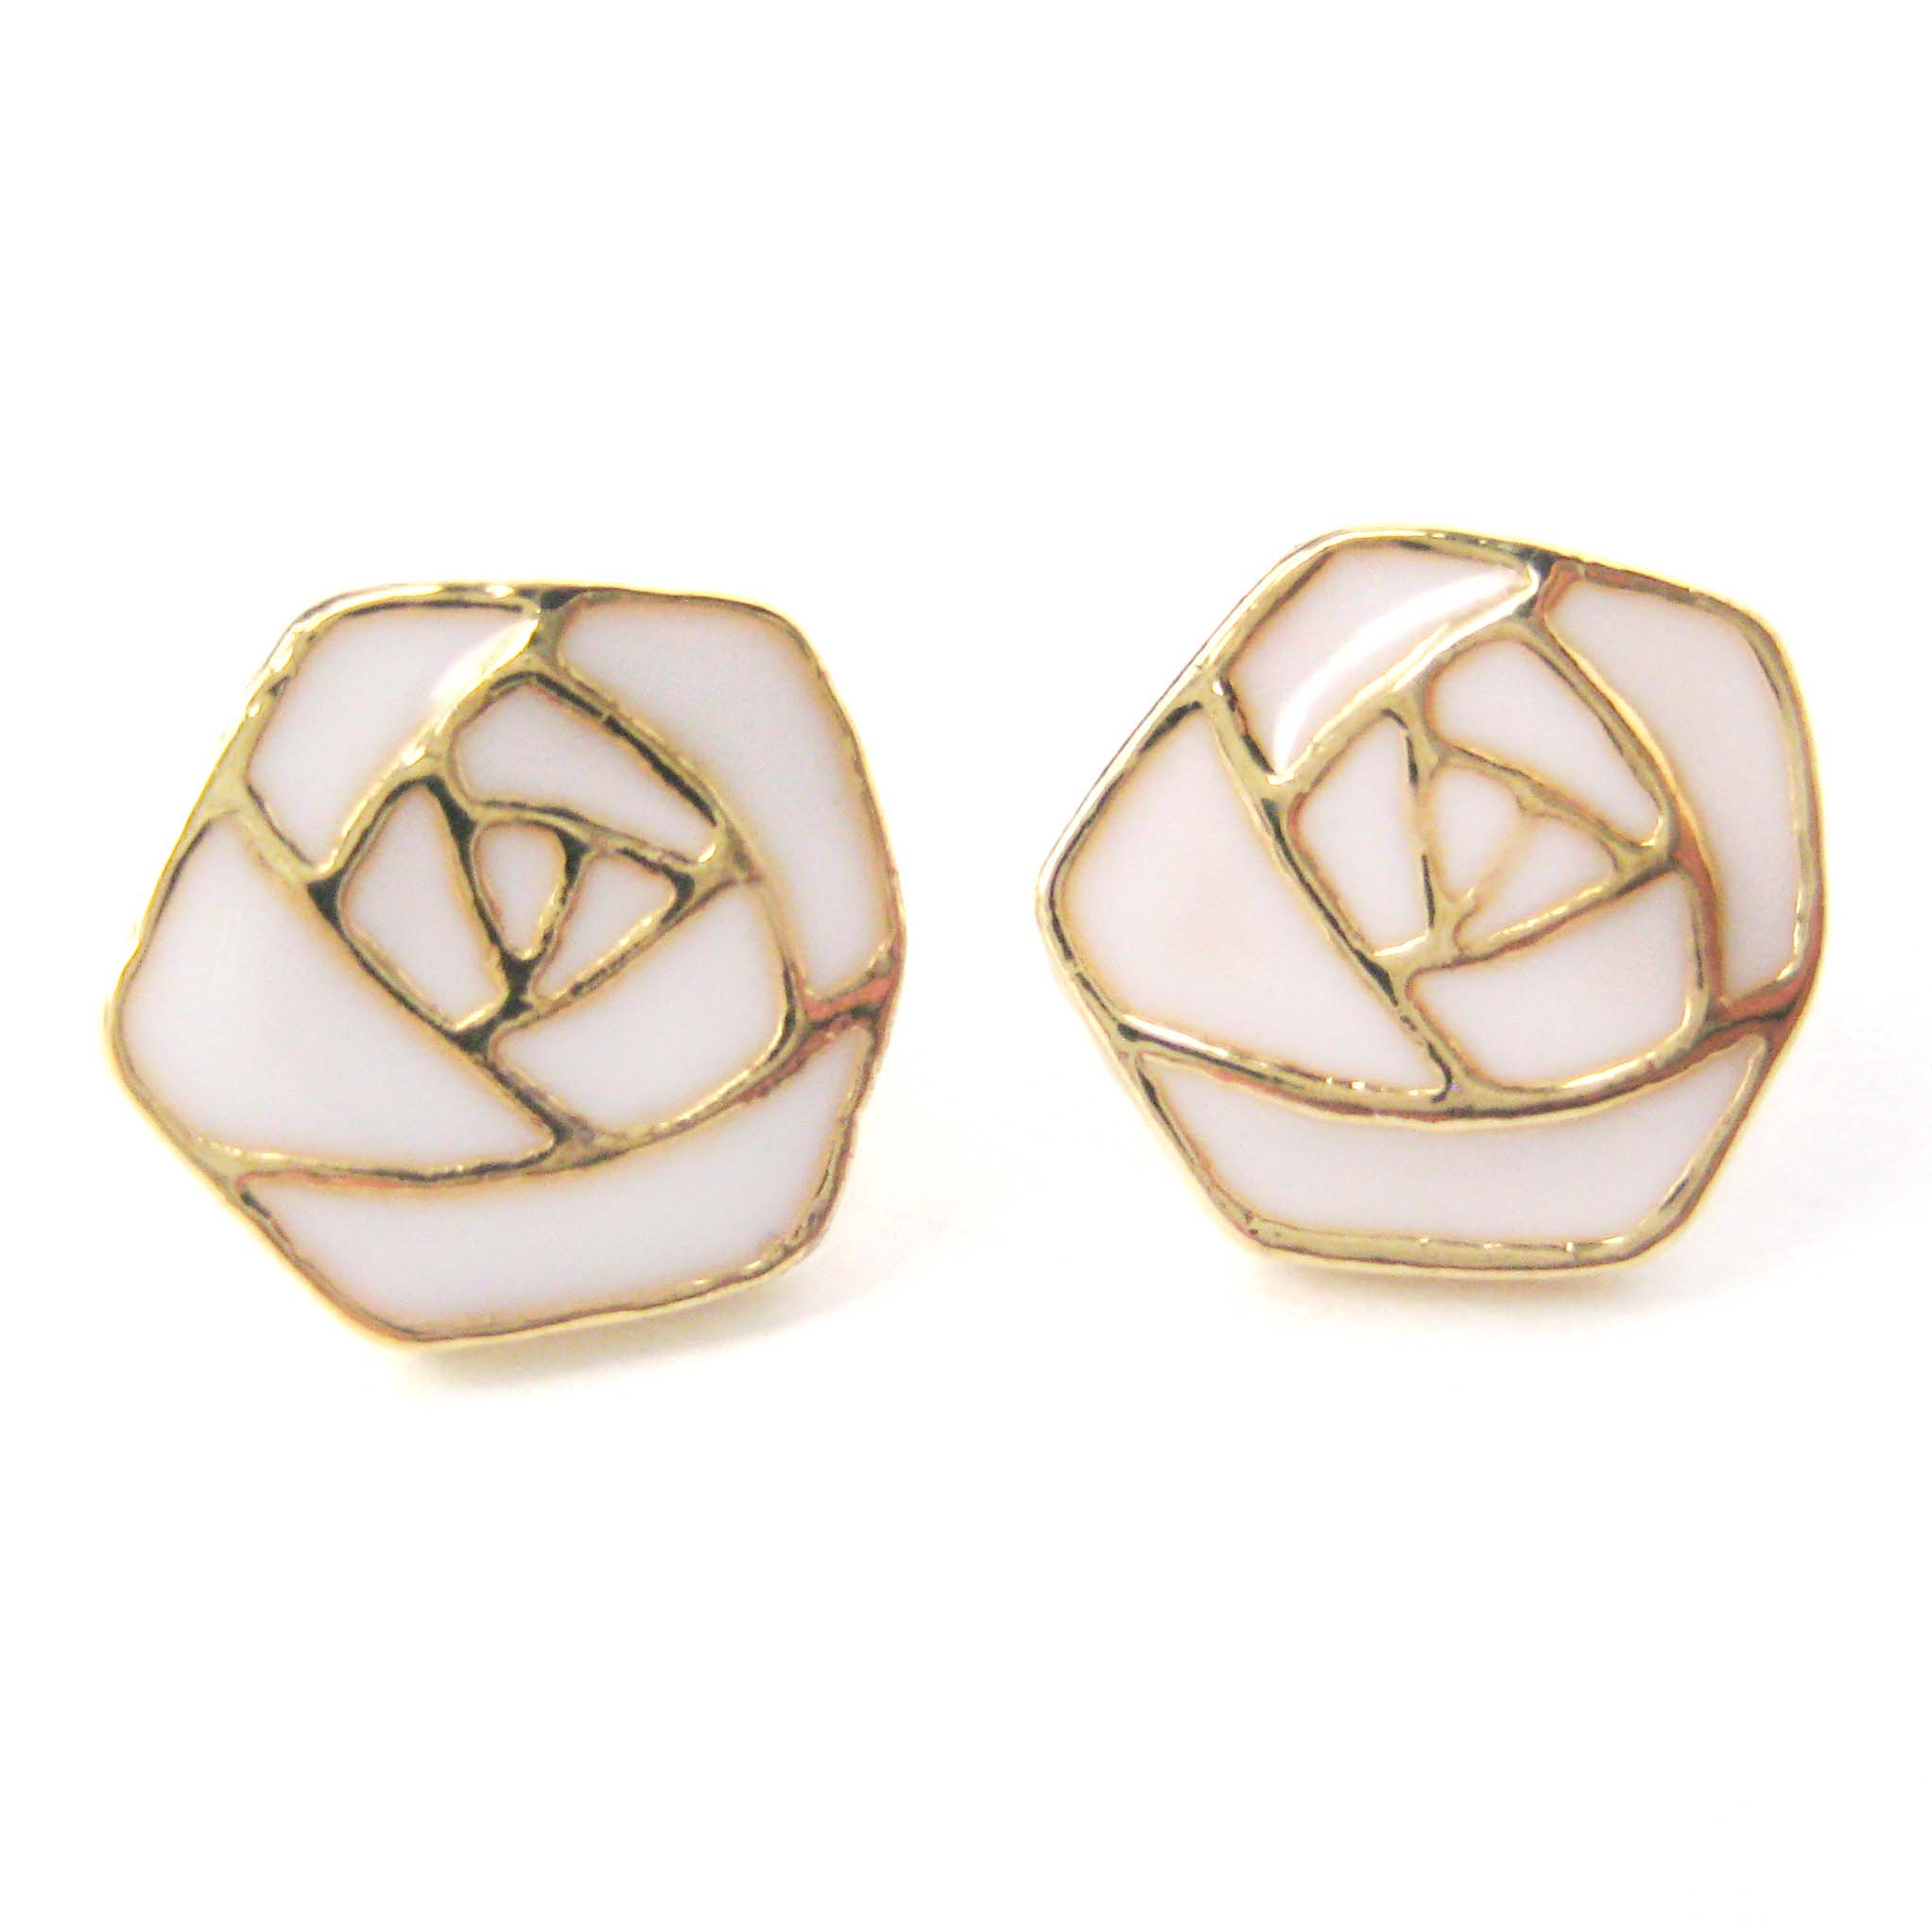 stud earrings ellenwood in semilla gold semillanoths sevilla small ethical shakti product fairtrade